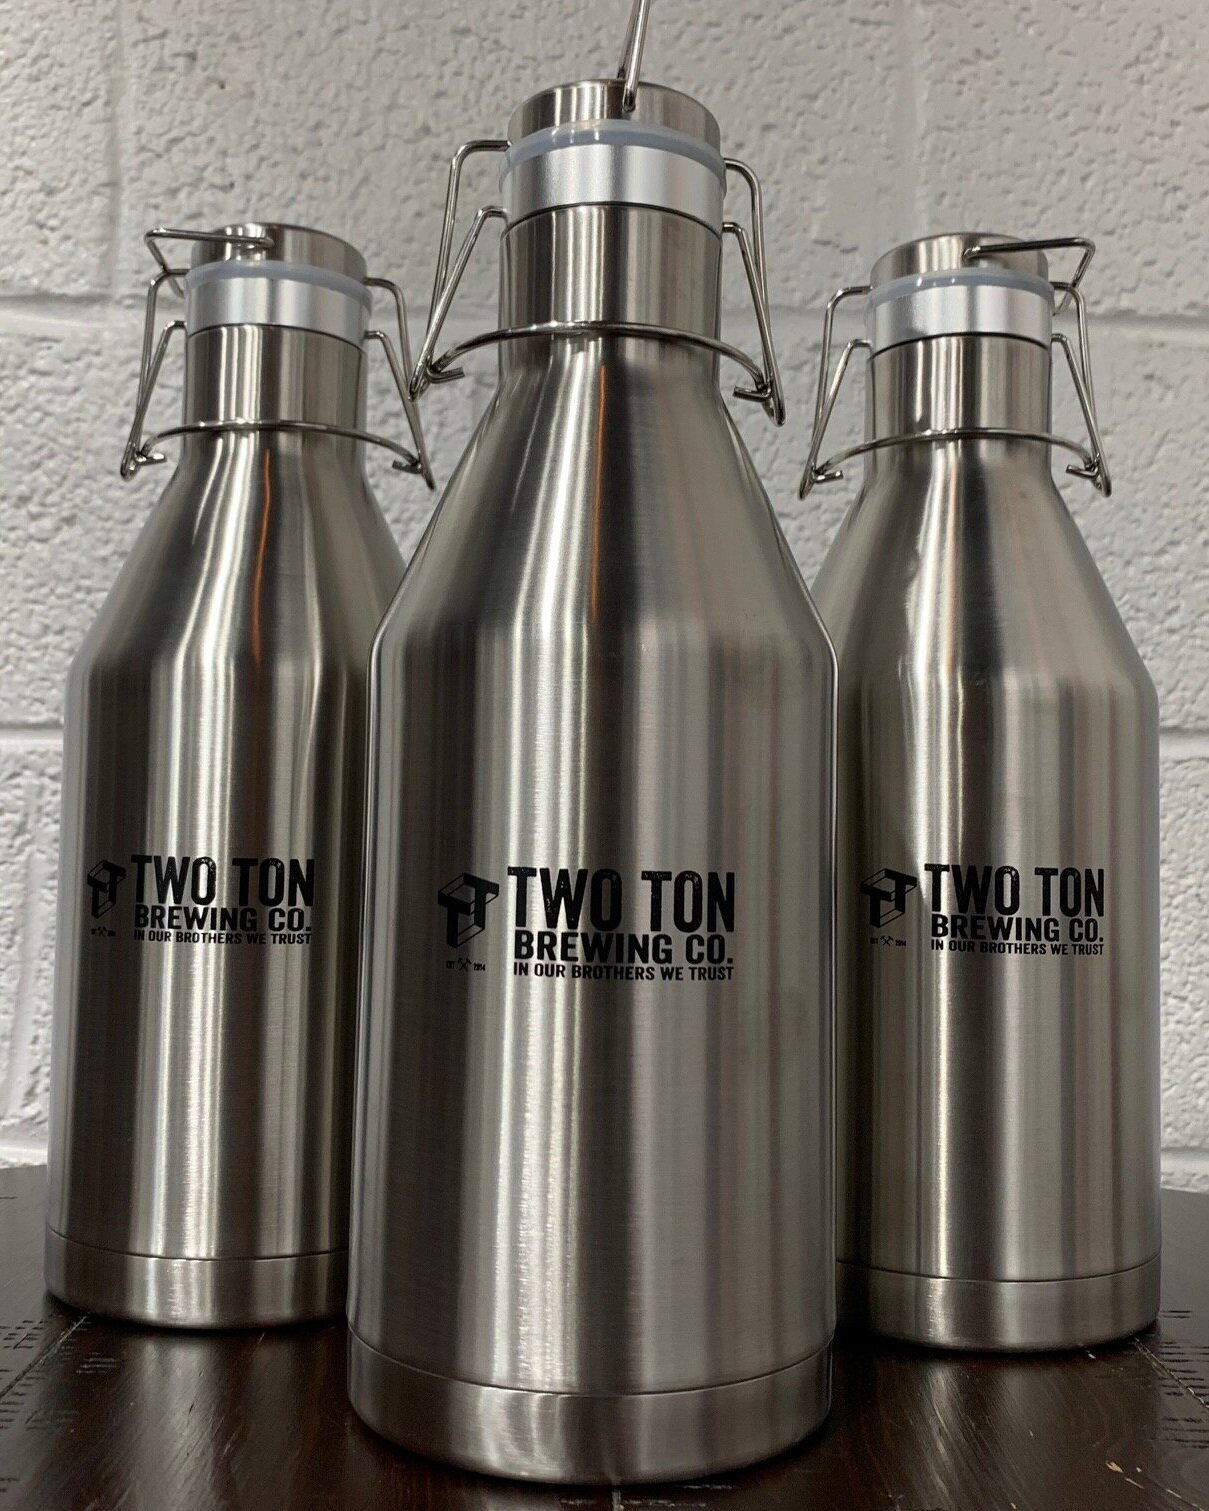 Two Ton Growler (Empty)    $35.00   Double-walled stainless steel growler with swing-top lid keeps your beverages cold and fresh longer! 64oz capacity. Can be purchased empty. But why?!?!